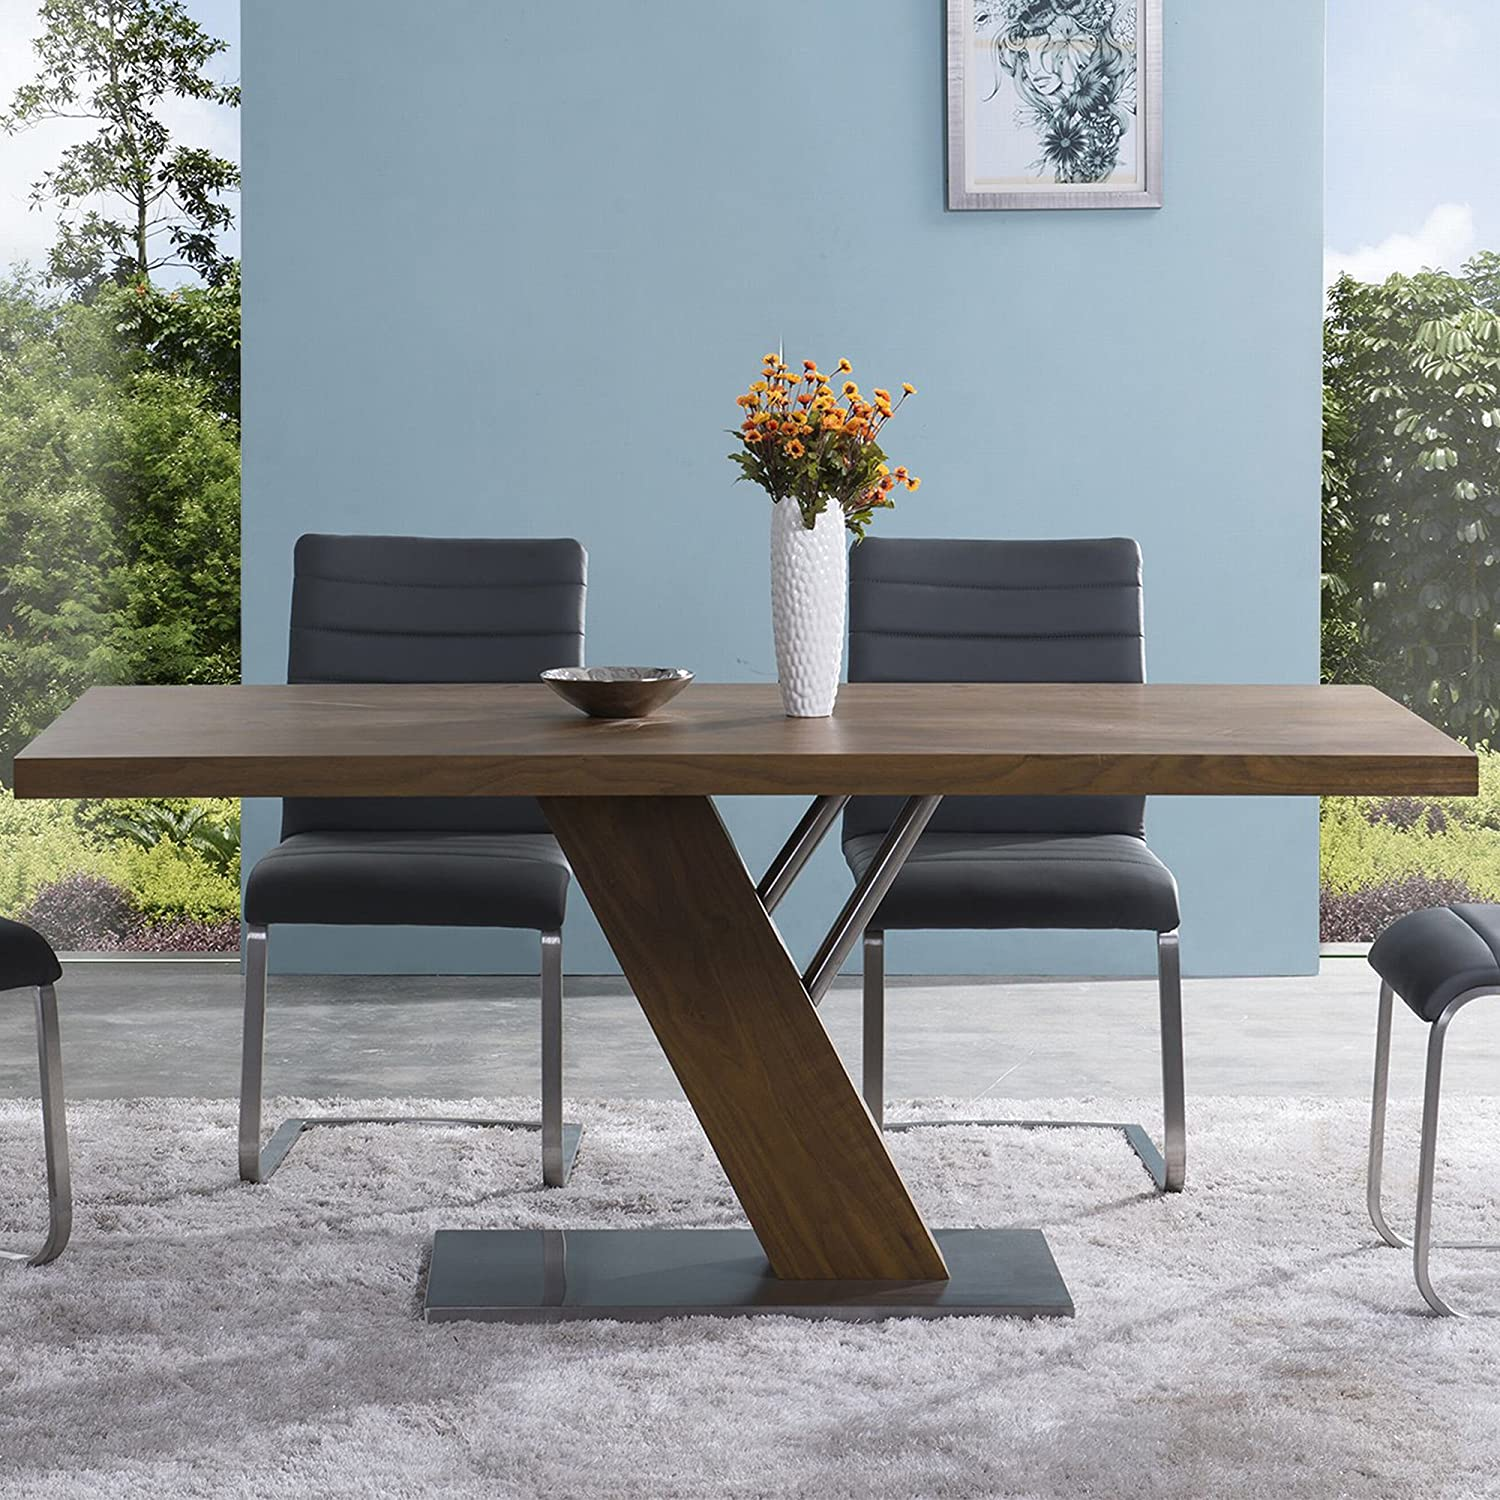 Armen LivingFusion Contemporary Dining Table In Walnut Wood Top and Stainless Steel, Brown